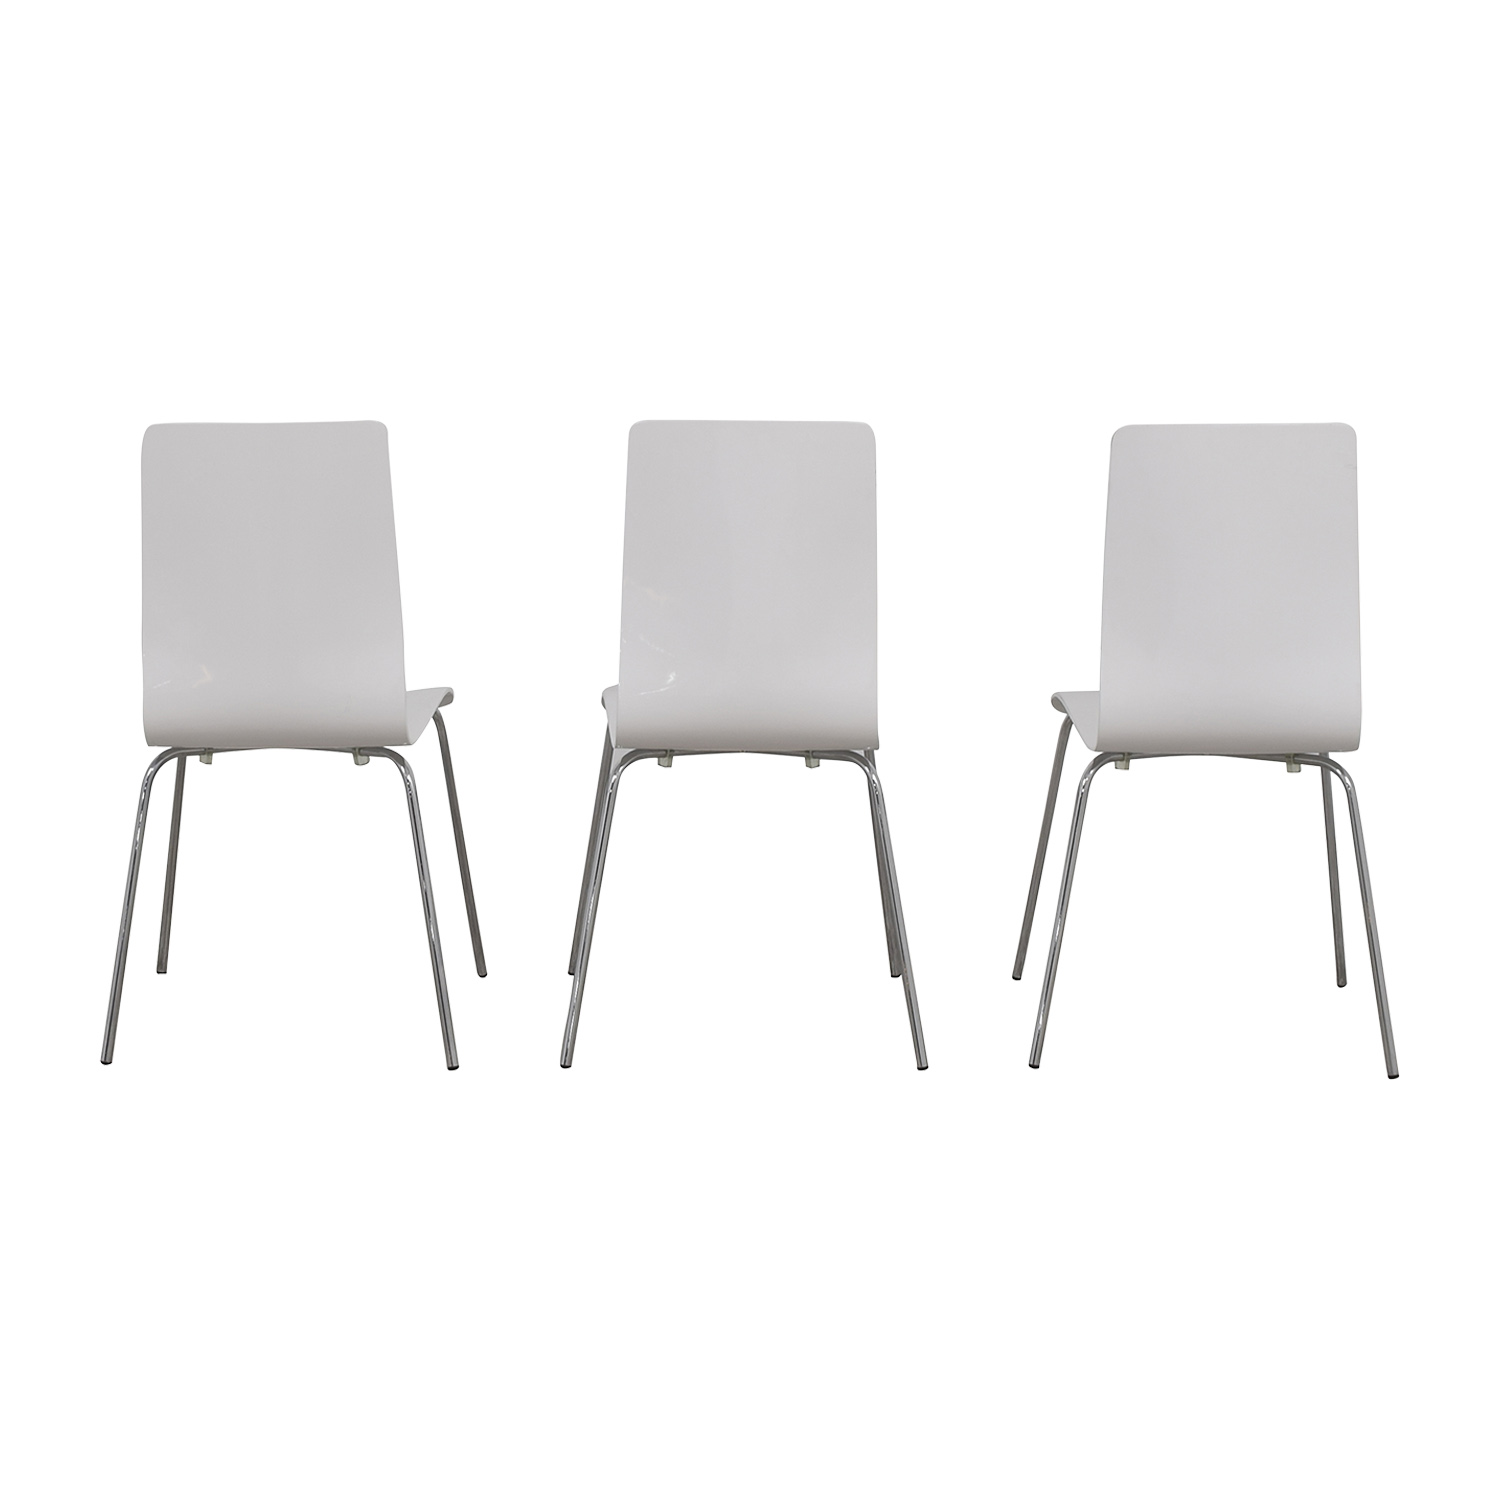 Newspec Newspec Modern Glossy White Dining Chairs nyc